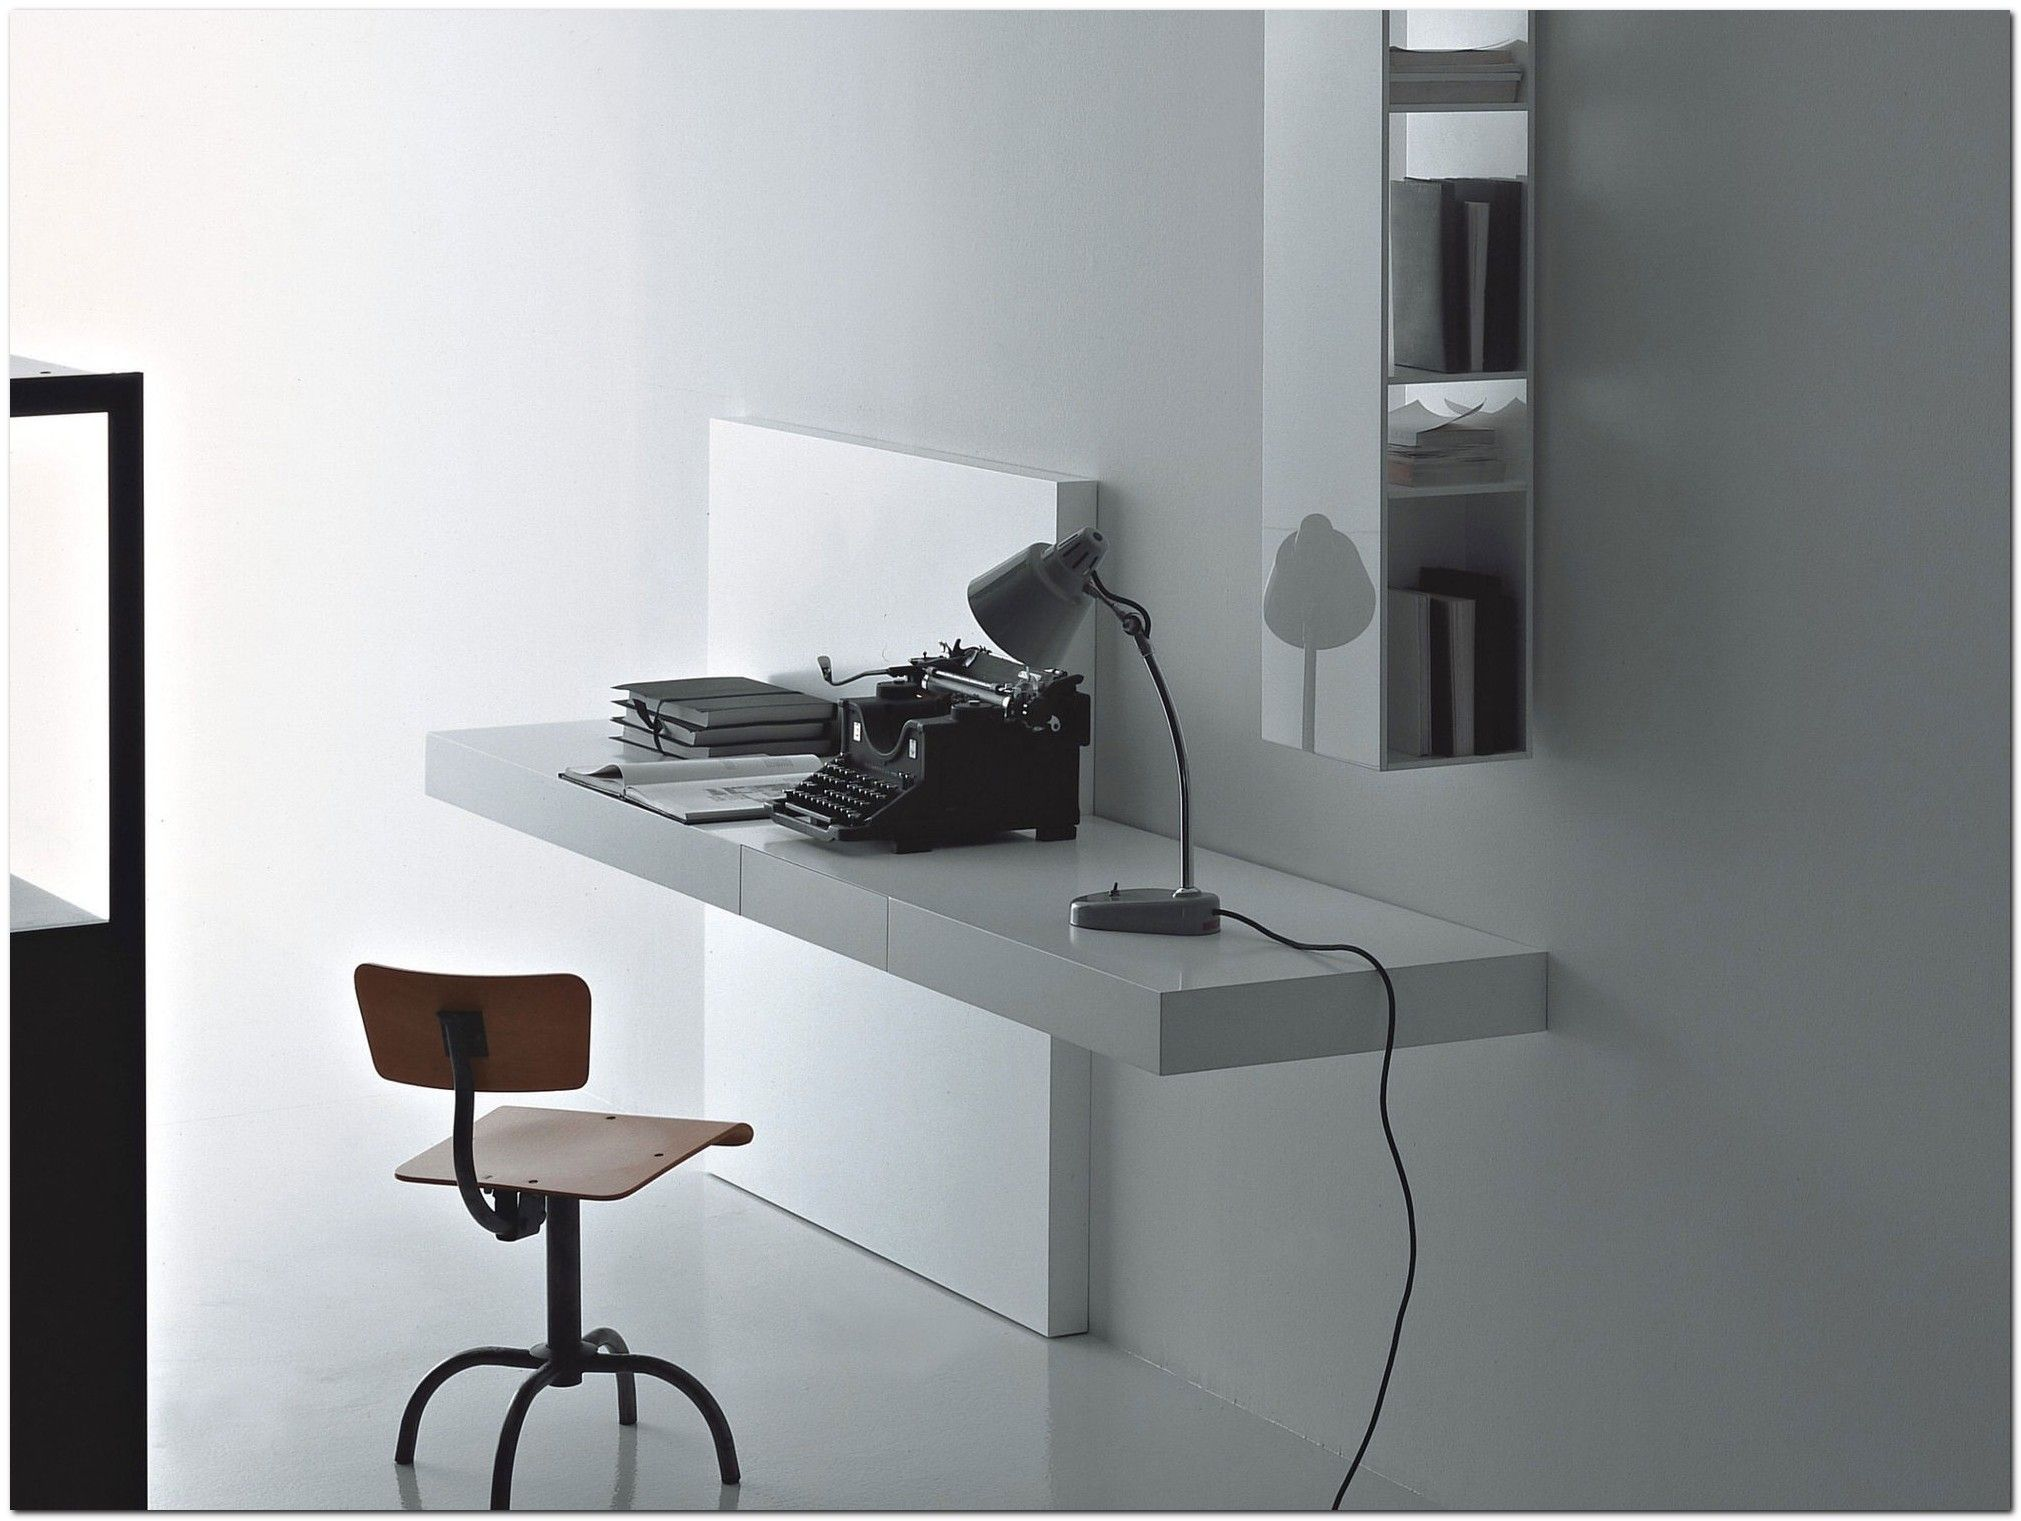 100 Modern Wall Mounted Desk Ideas The Urban Interior Wall Mounted Desk Ikea Wall Mounted Desk Modern Secretary Desk